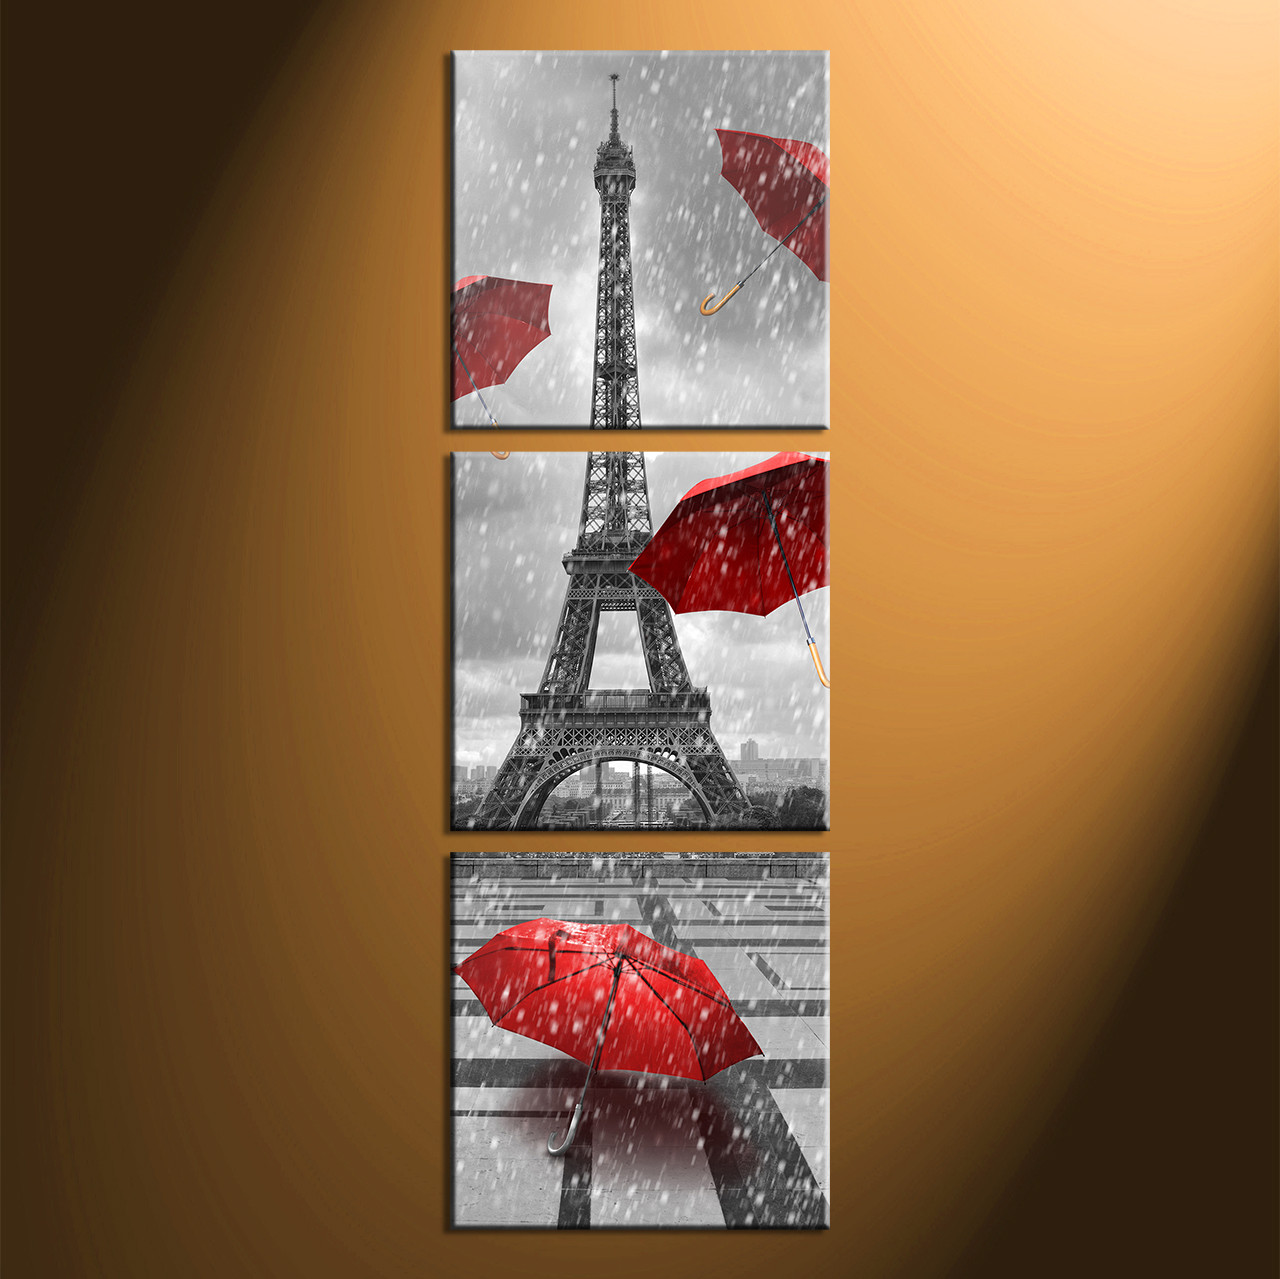 Home Decor, 3 Piece Wall Art, Umbrella Panel Art, Eiffel Tower Art,